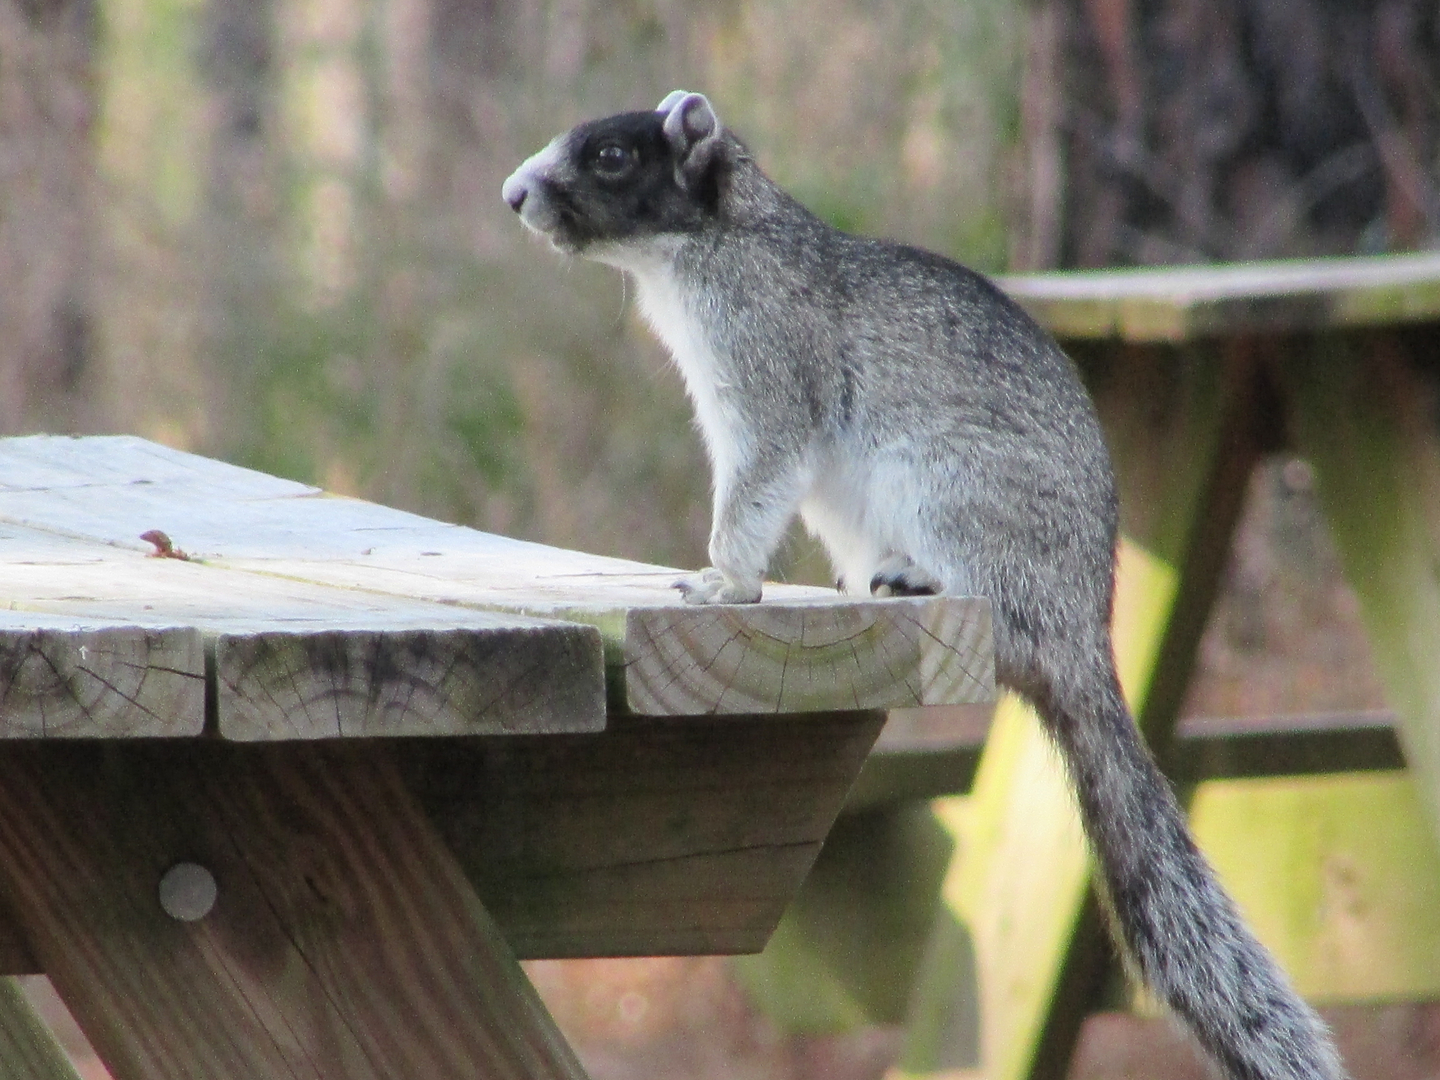 Fox Squirrel on Picnic Table